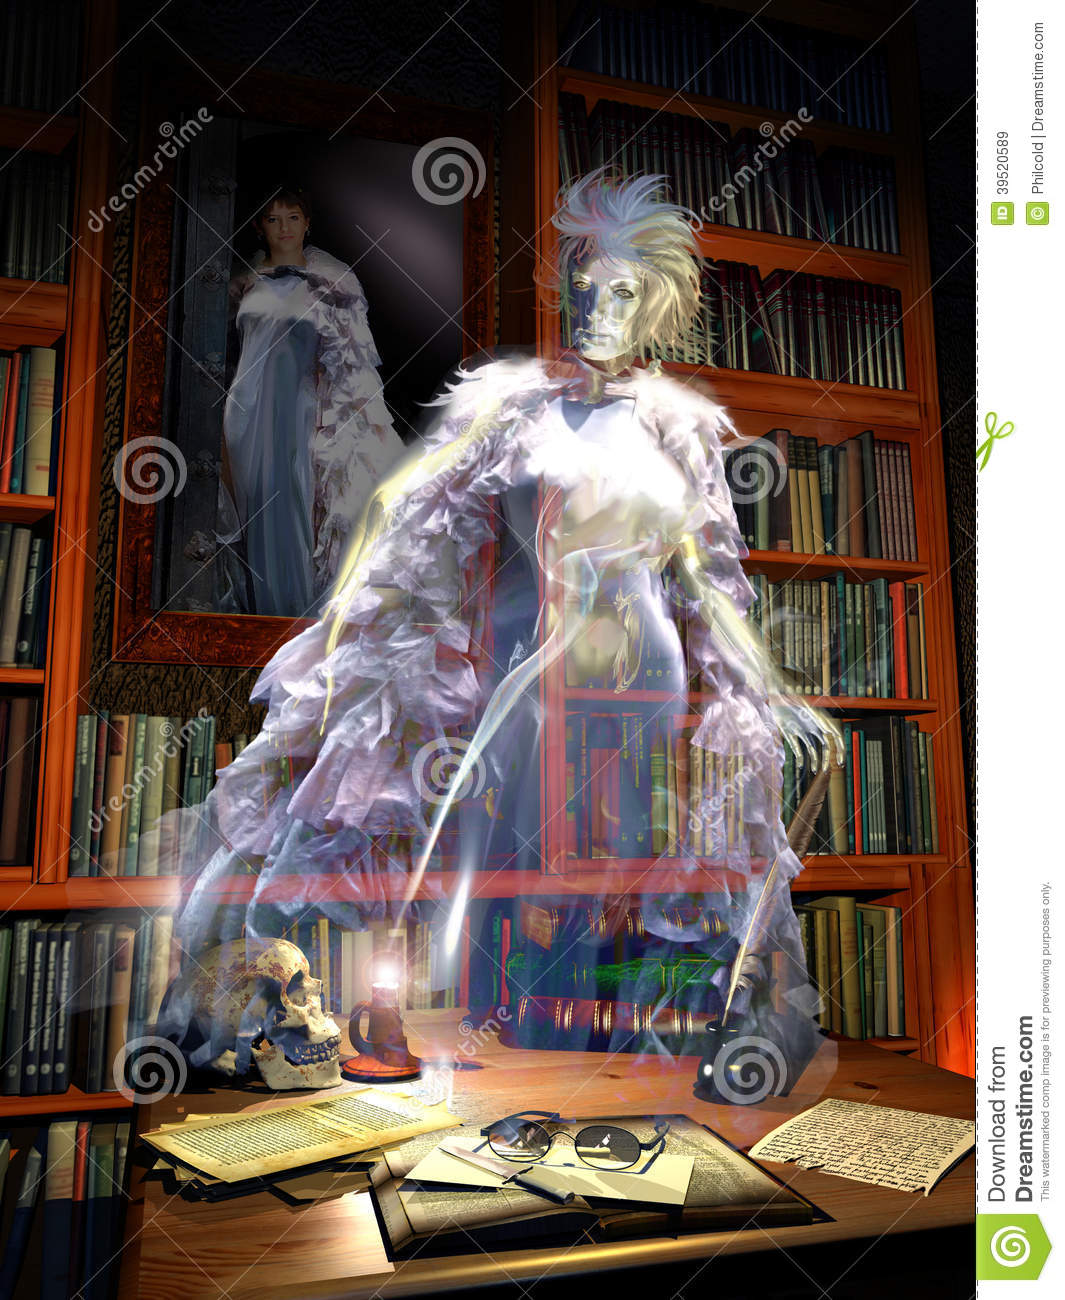 Library Ghost Stock Illustration - Image: 39520589